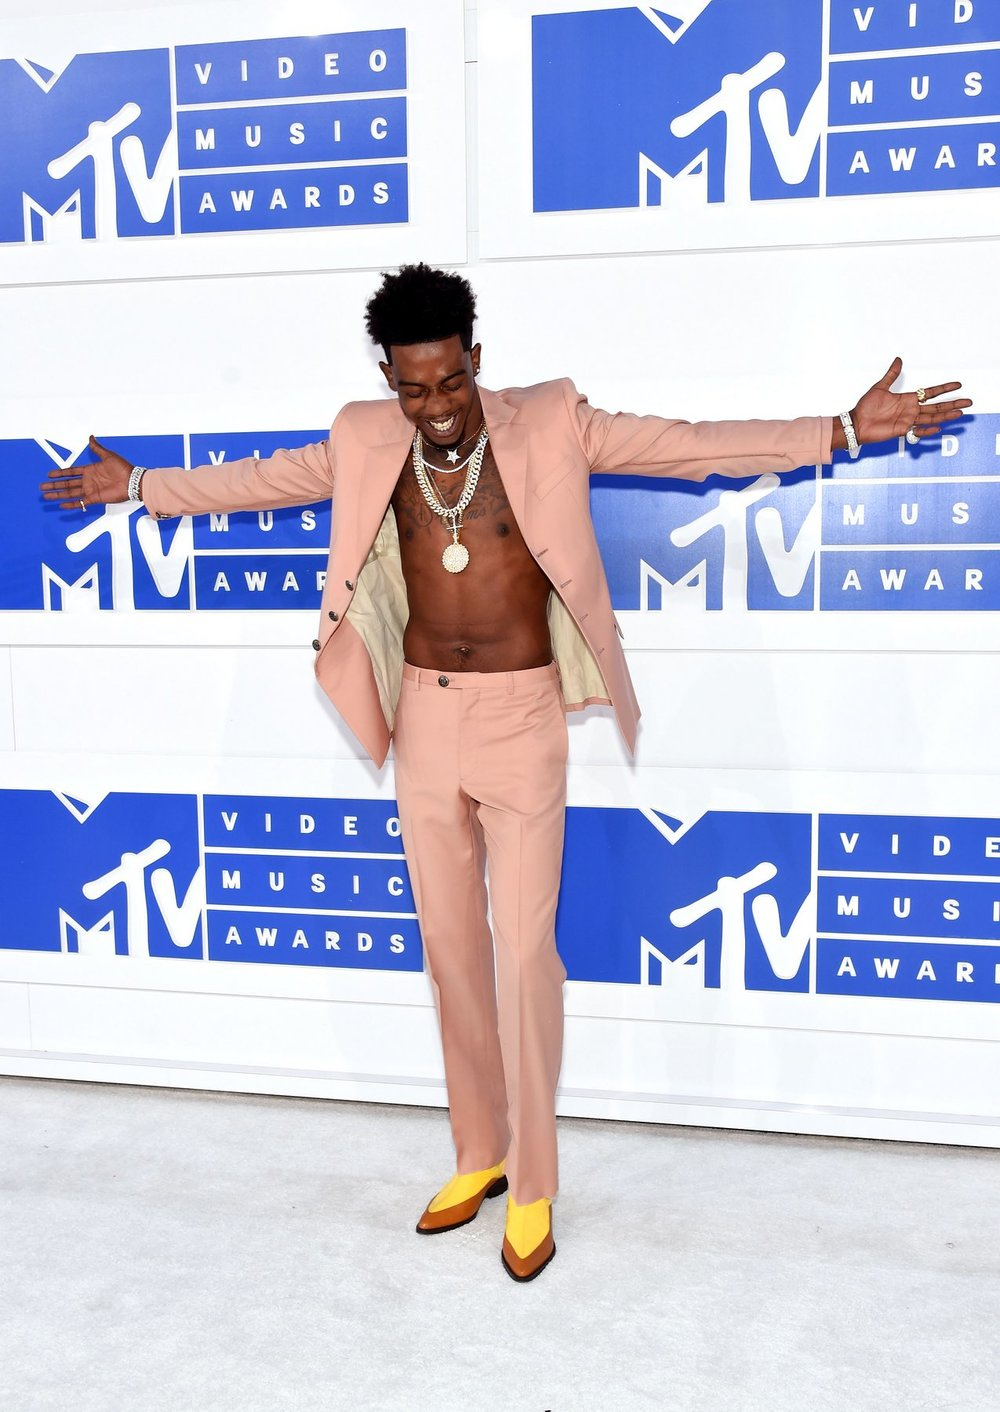 Sure to be the next biggest trend...19-year-old rapper,Desiigner is making his mark on fashion.Keeping it casual and opting for a shirtless Maison Margiela look. Suited and booted, sexy and sleek.